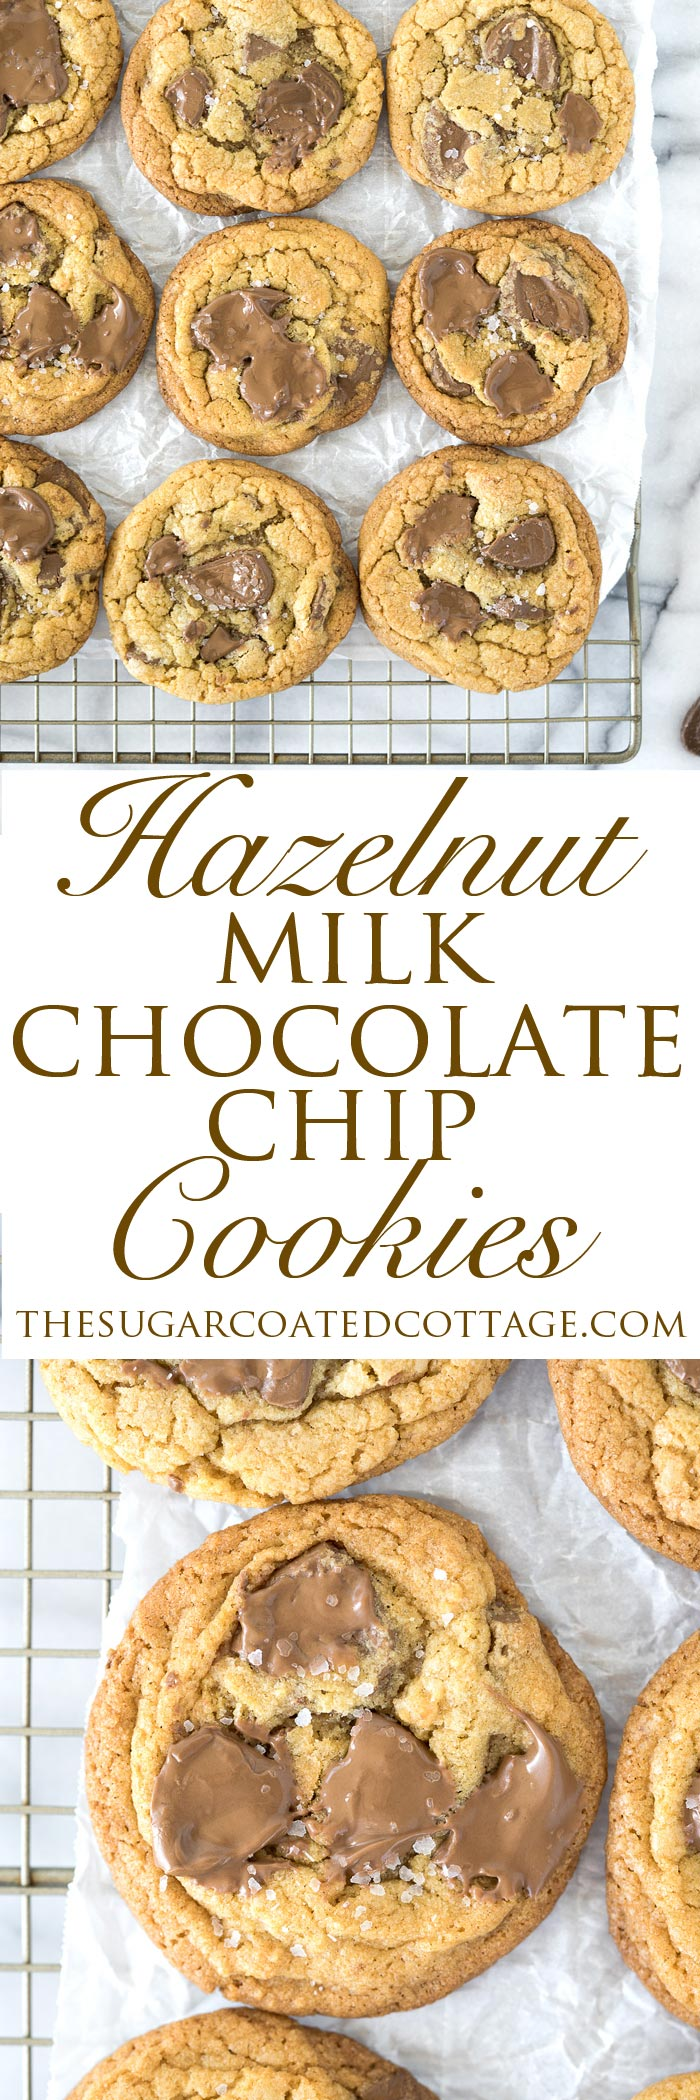 Valrhona Hazelnut Milk Chocolate Chip Cookie Recipe. This fabulous cookie is studded with Valrhona Hazelnut Milk Chocolate Feves (chips) and sprinkled with sea salt. Luxurious, smooth and creamy sums up this cookie! | thesugarcoatedcottage.com #valrhona #chocolatechipcookie #milk chocolate